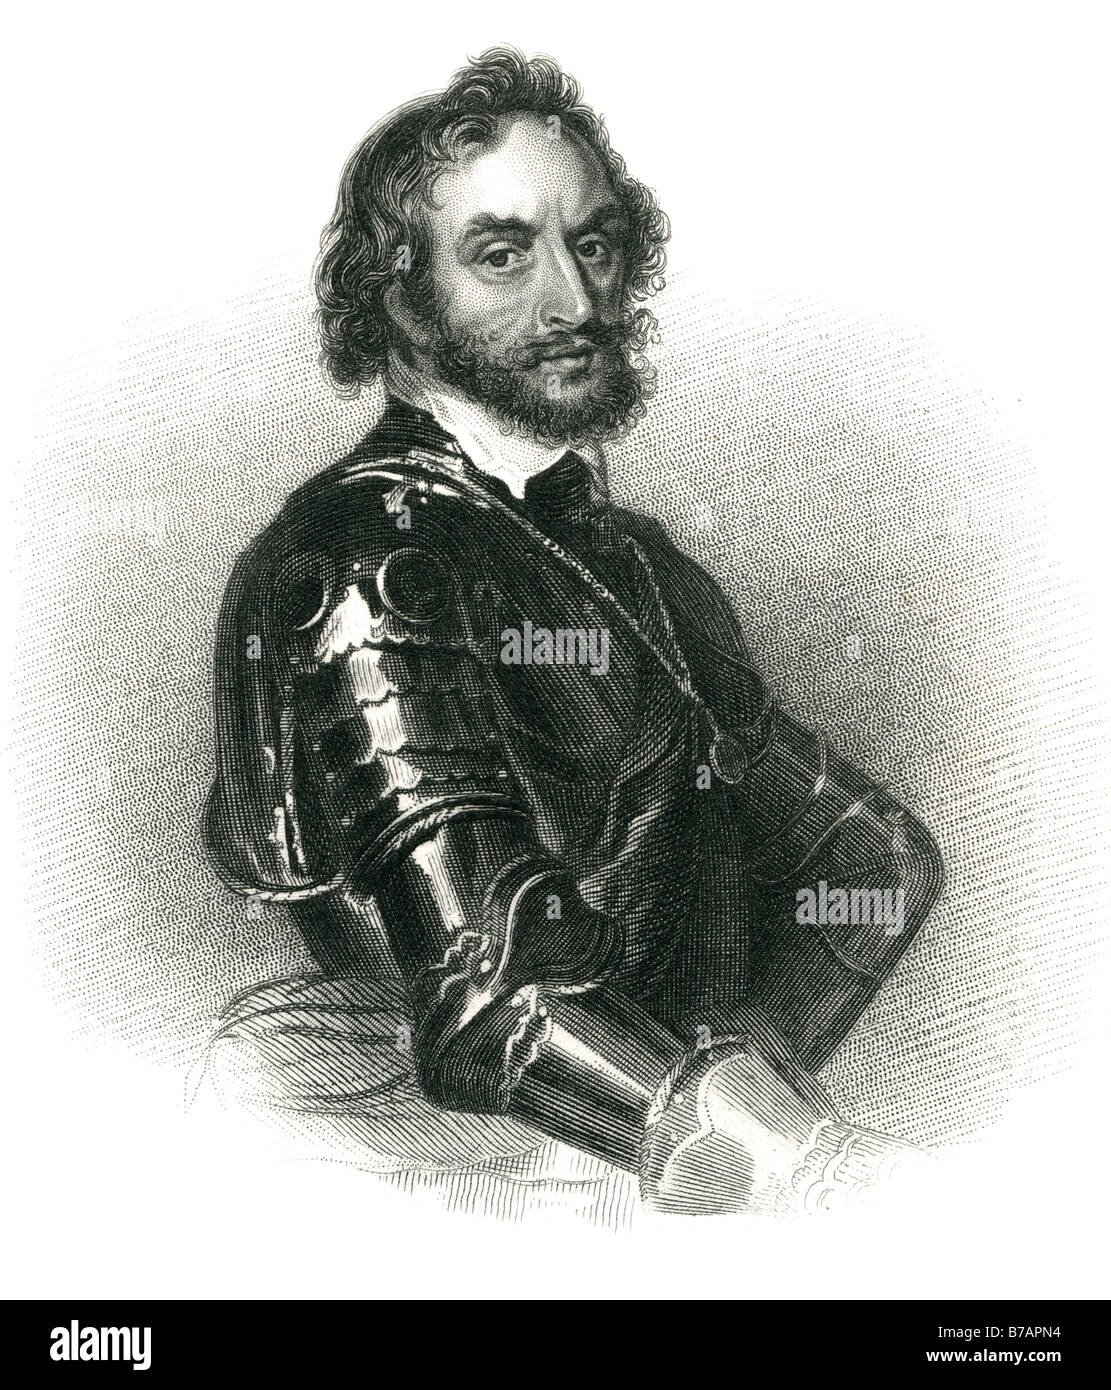 Thomas Howard, 21st Earl of Arundel, 4th Earl of Surrey and 1st Earl of Norfolk (7 July 1585–4 October 1646) was - Stock Image